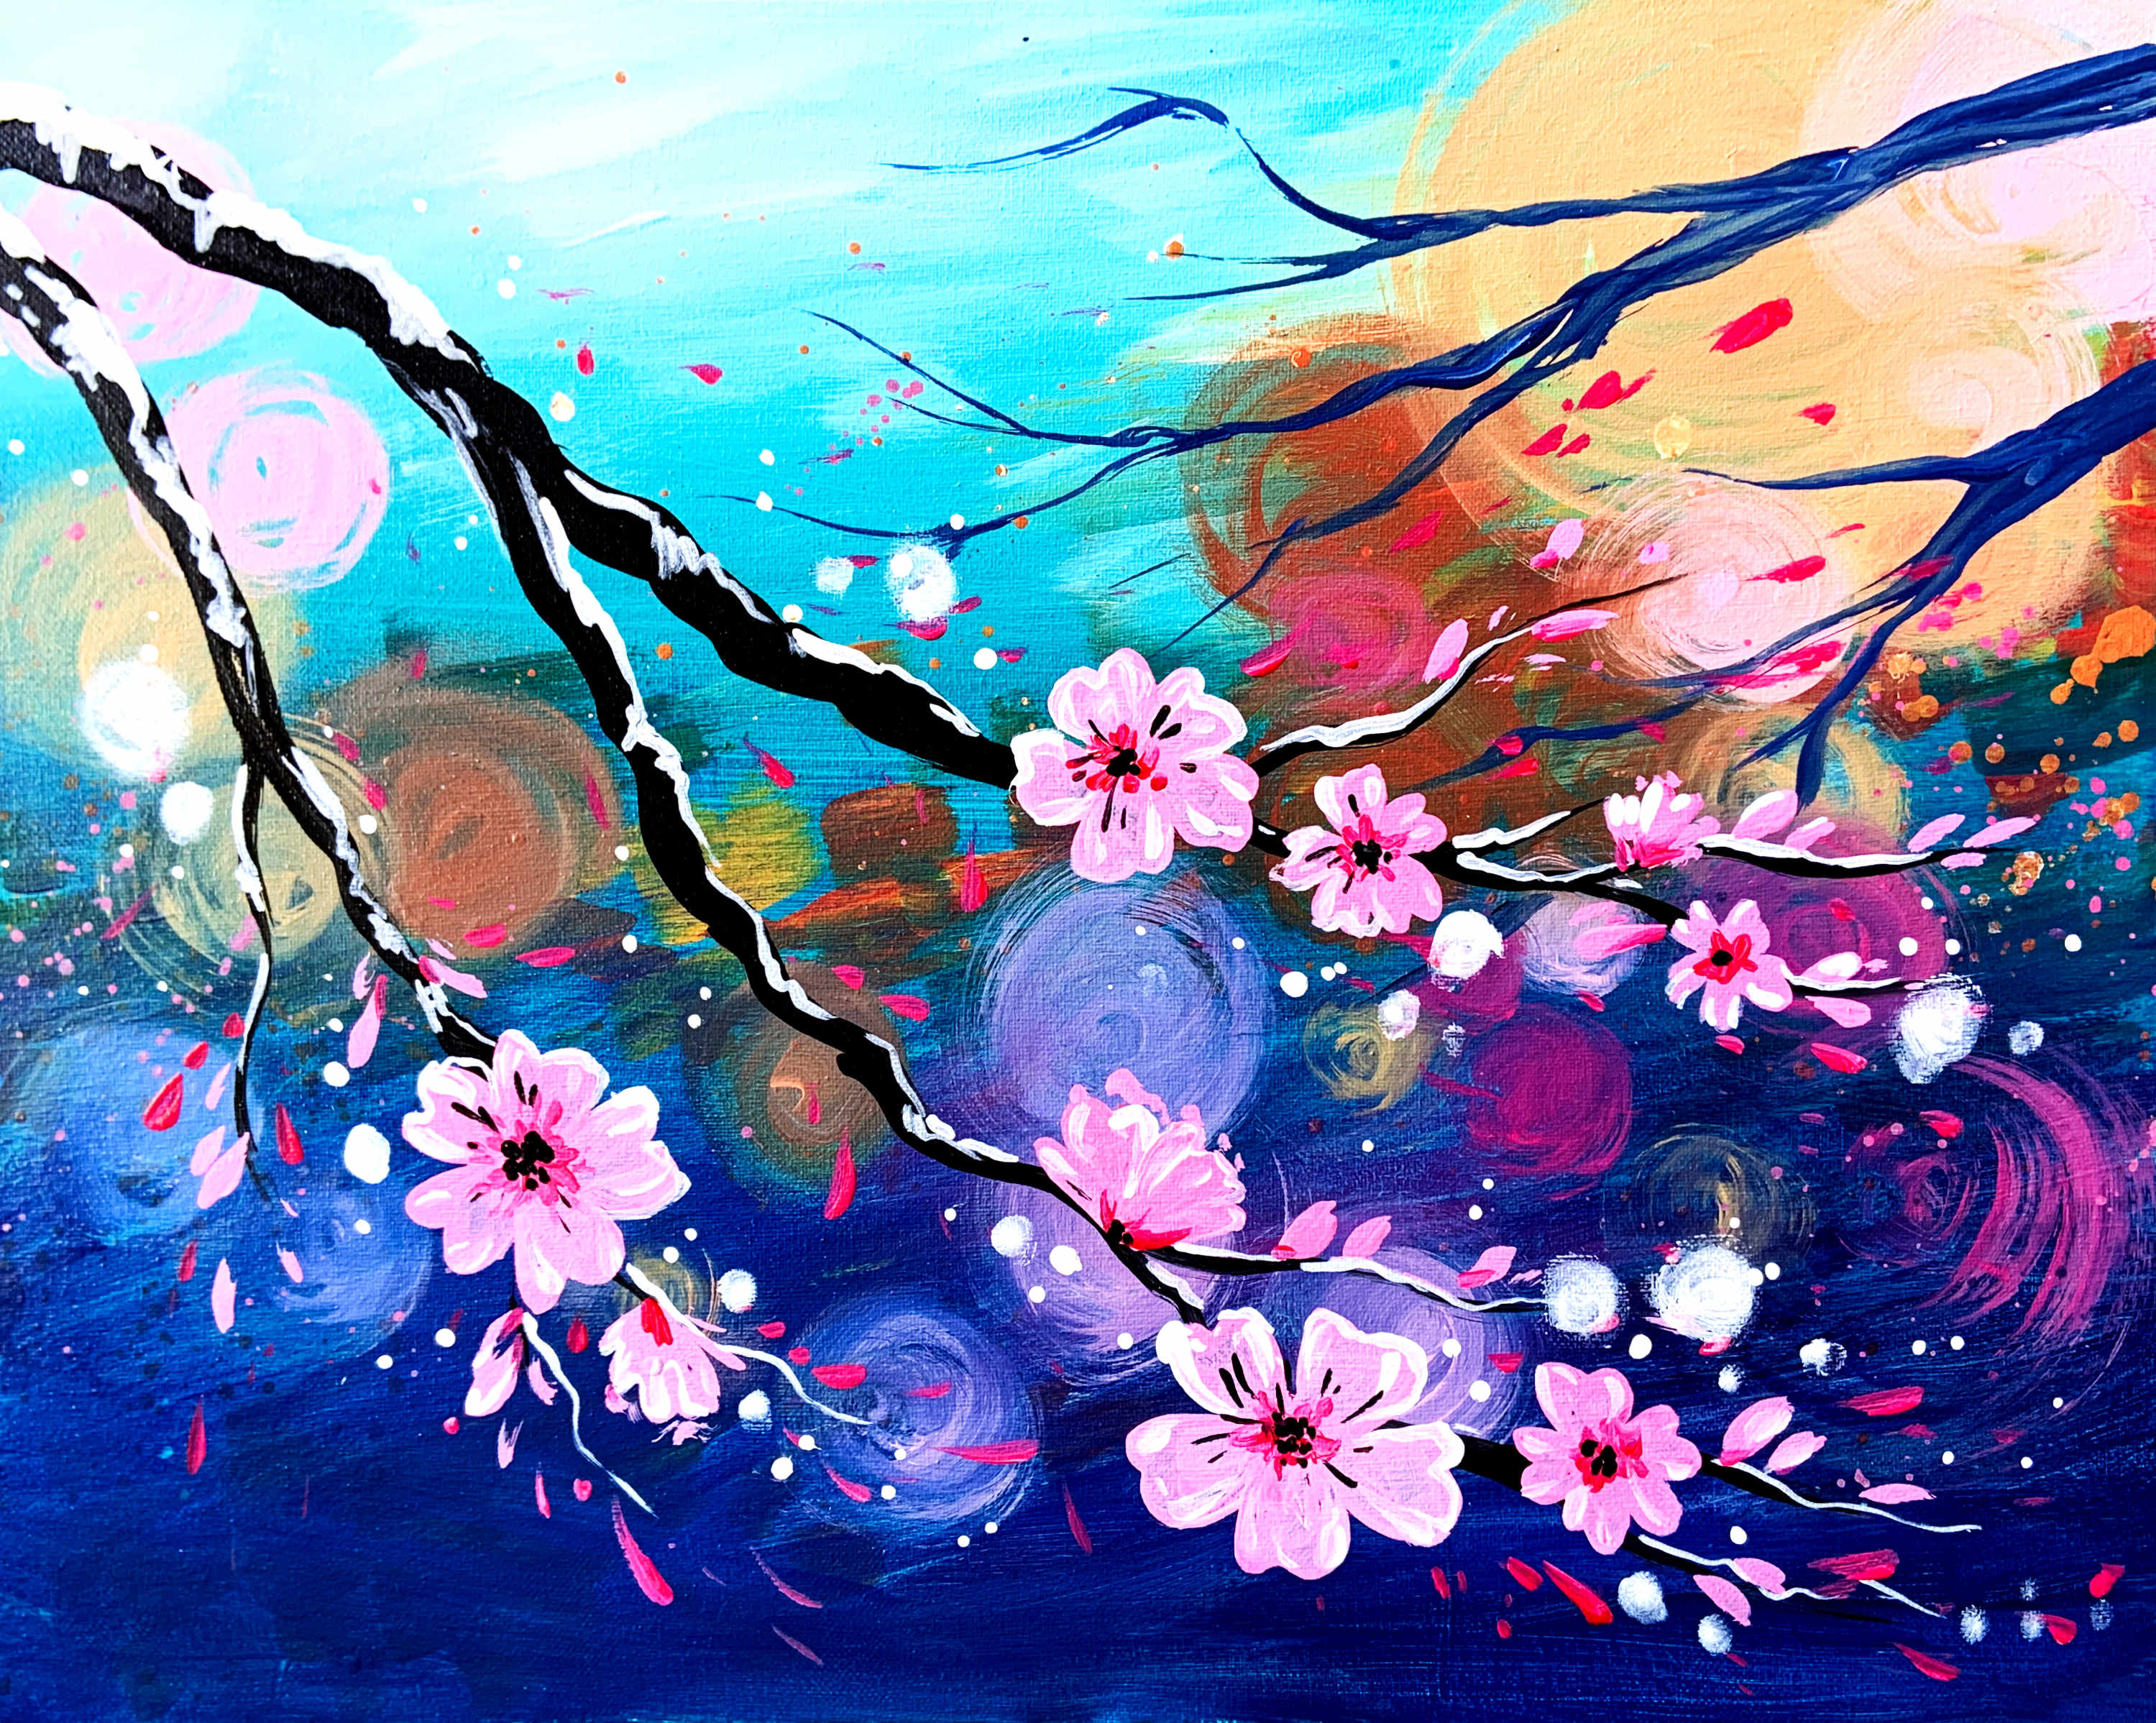 A Electric Cherry Blossom experience project by Yaymaker